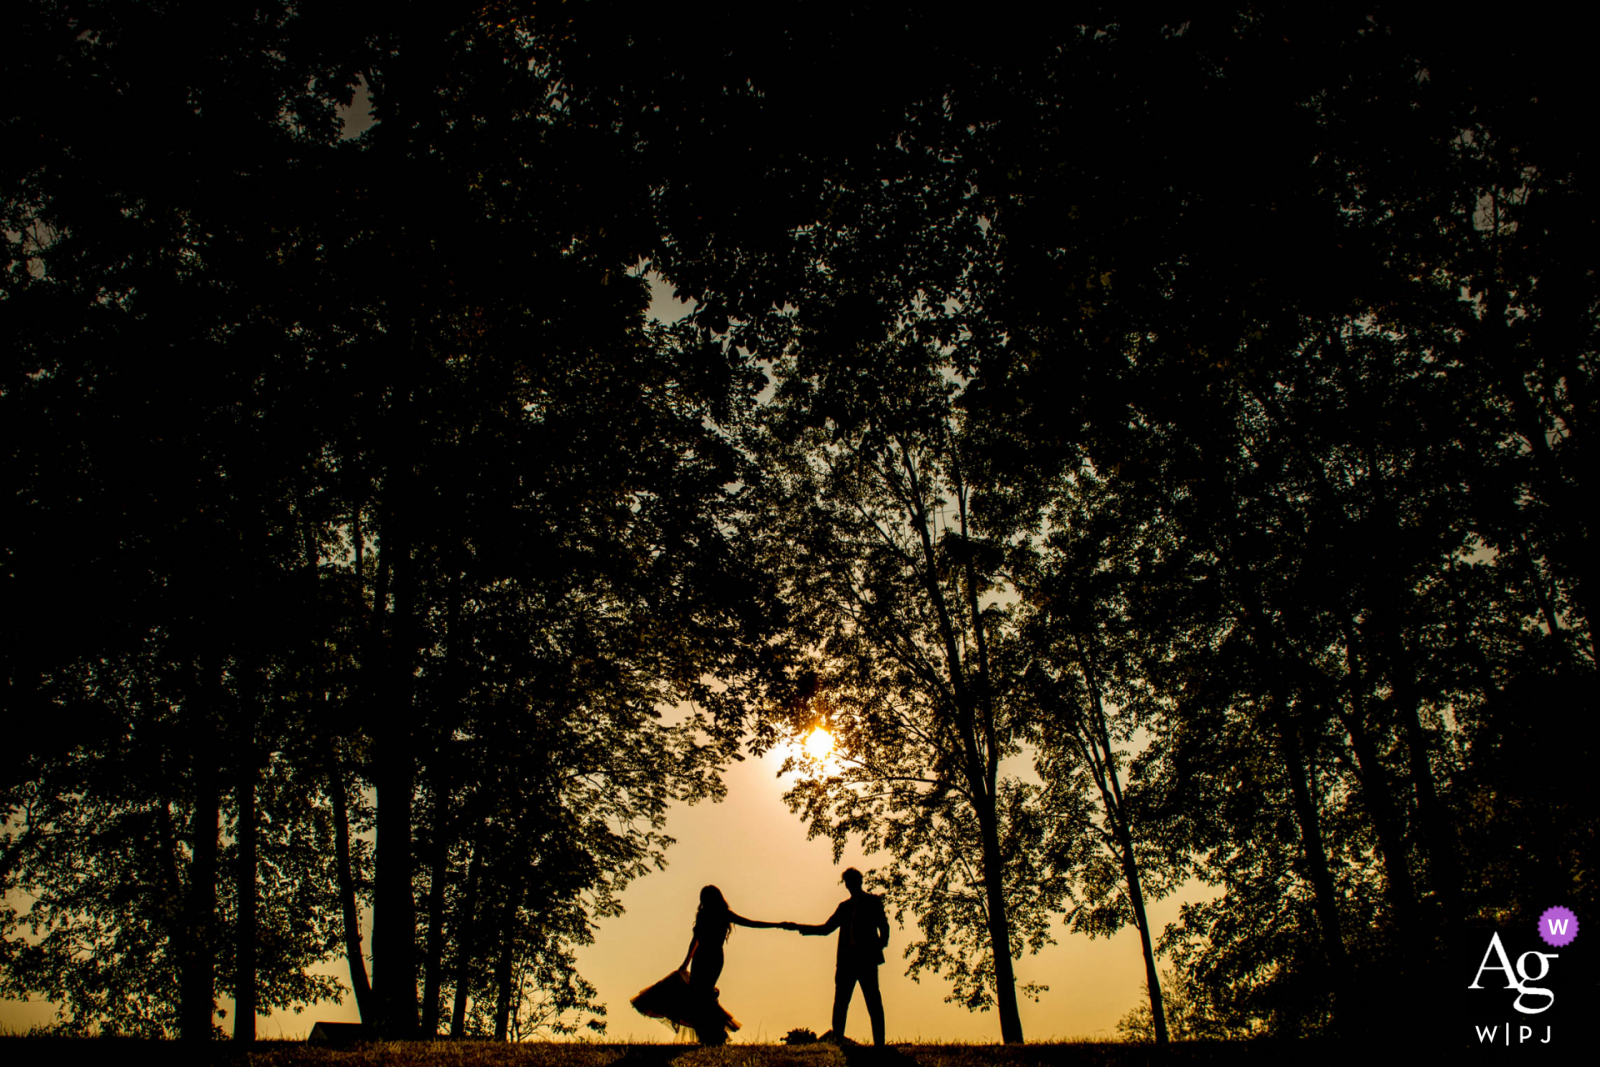 Shadow Creek Winery Wedding Silhouette image in the trees